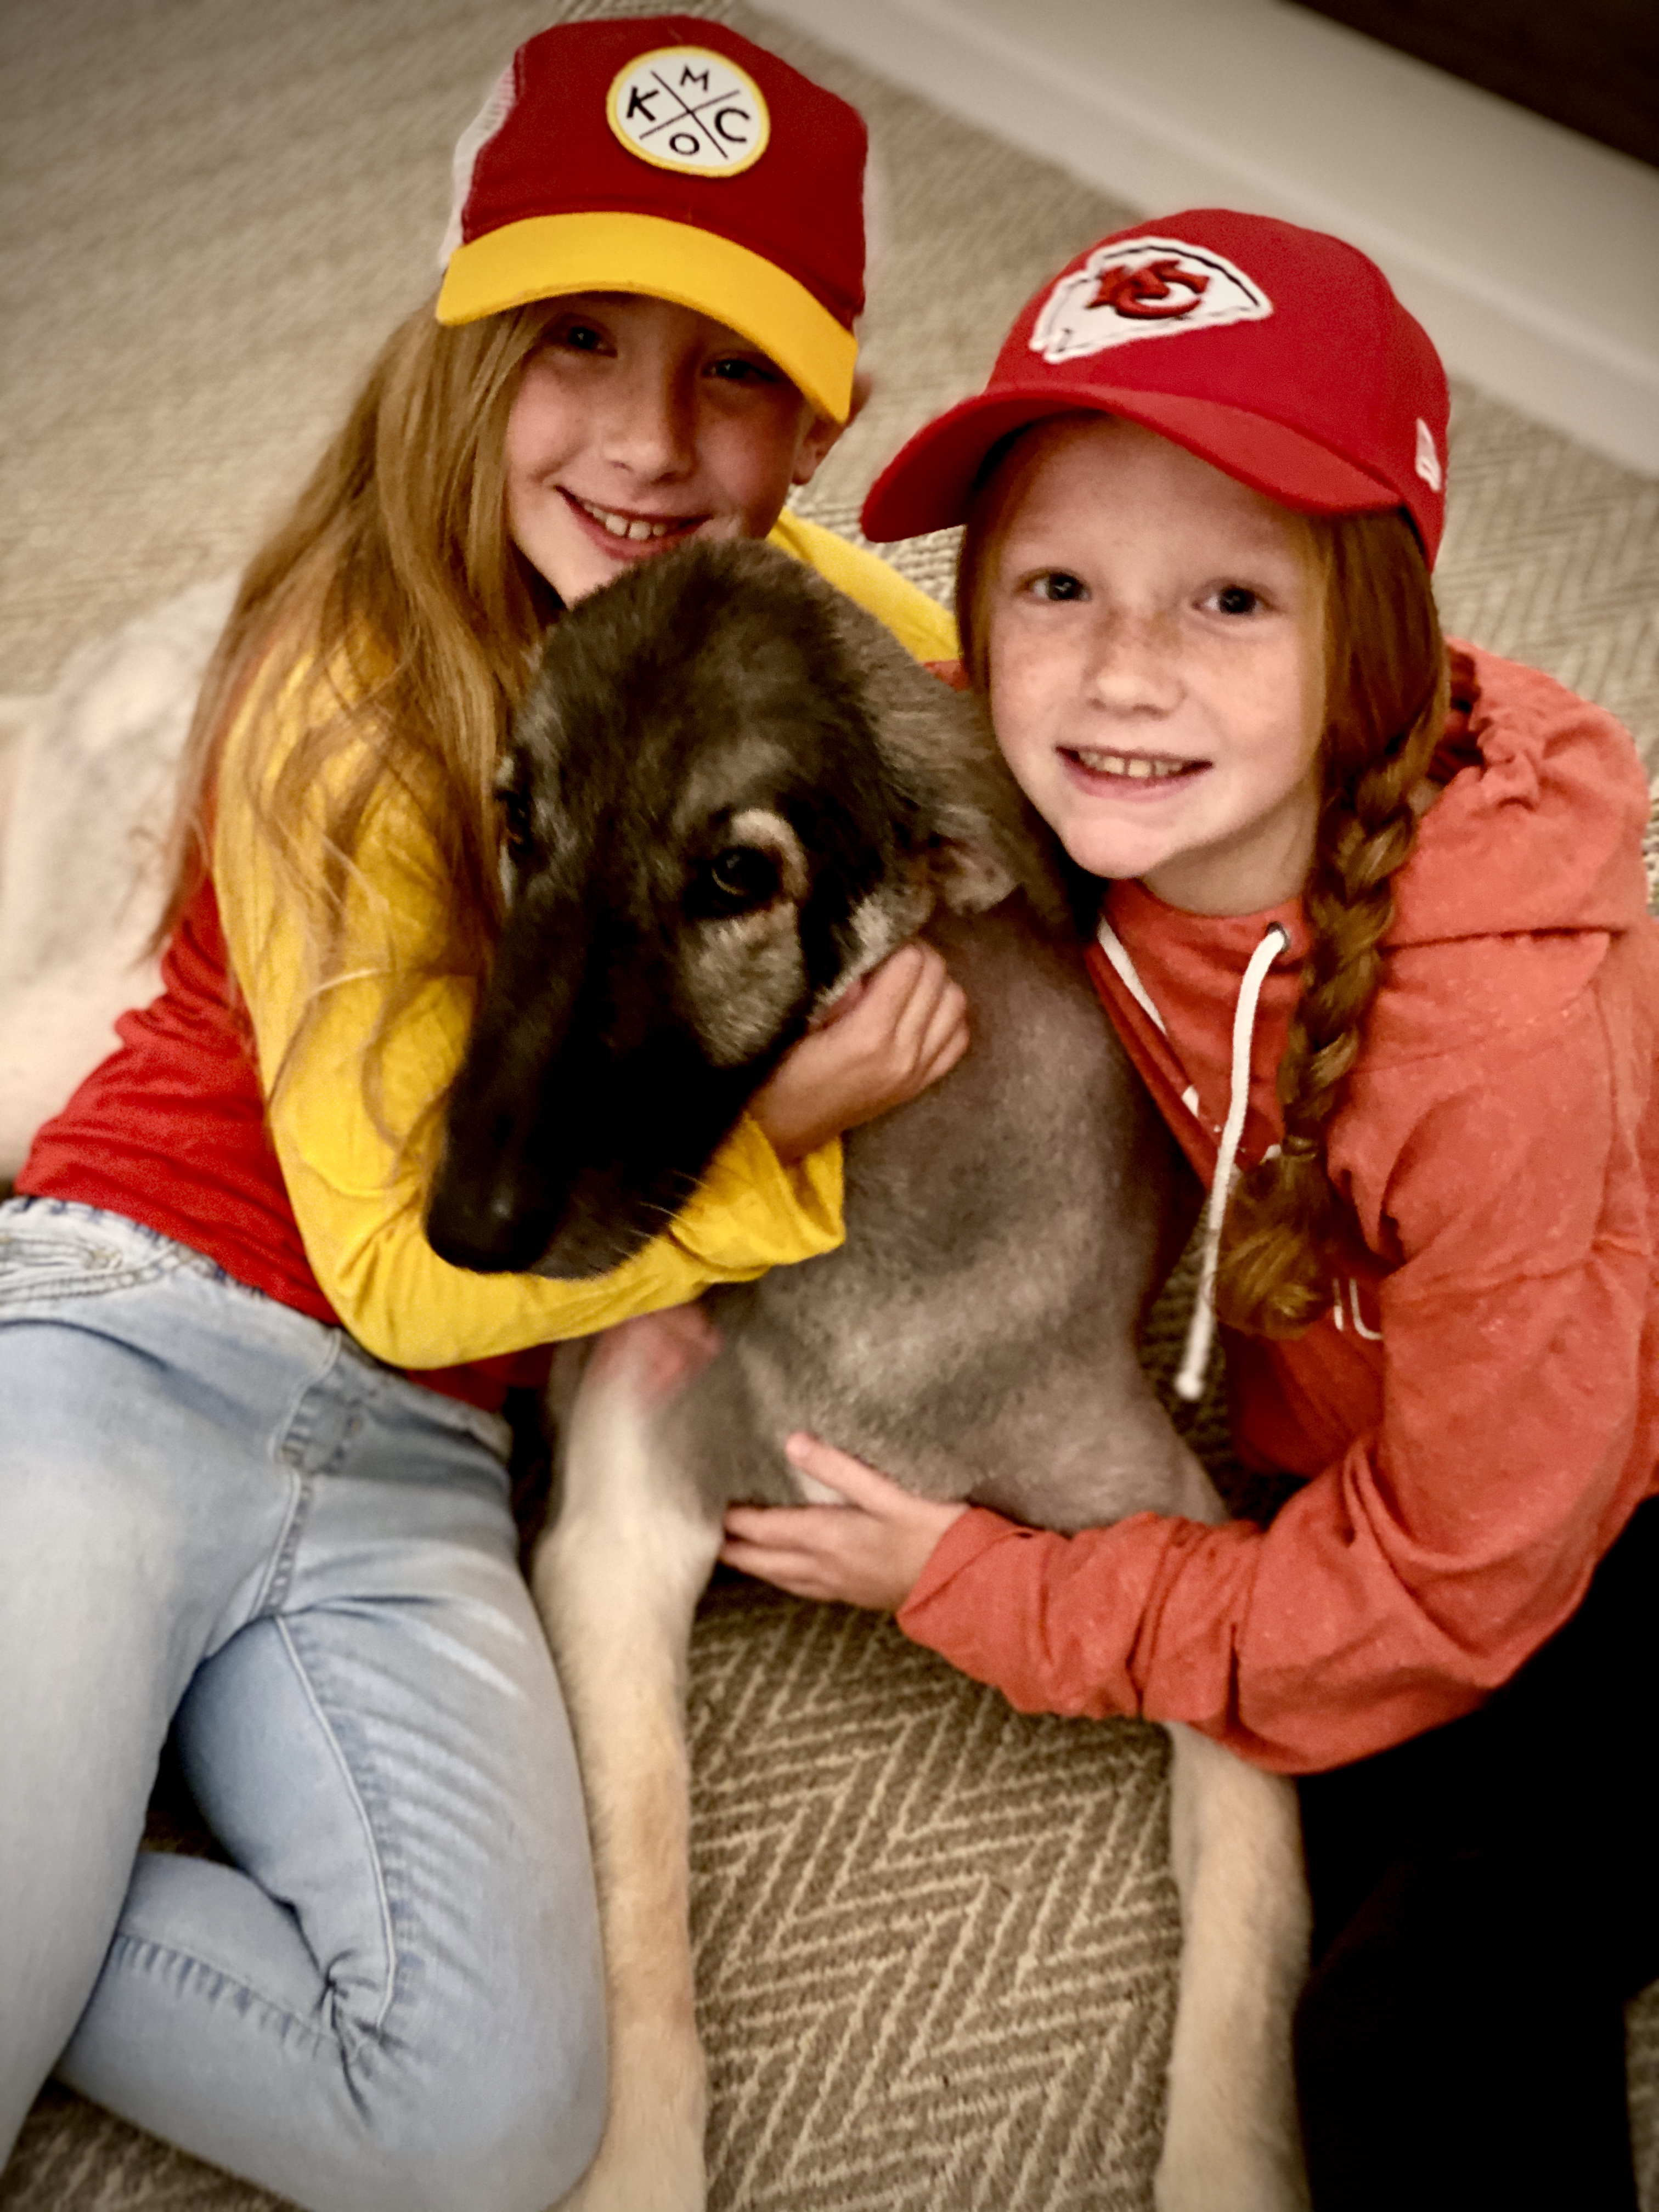 Picture of girls snuggling with dog wearing Chiefs gear